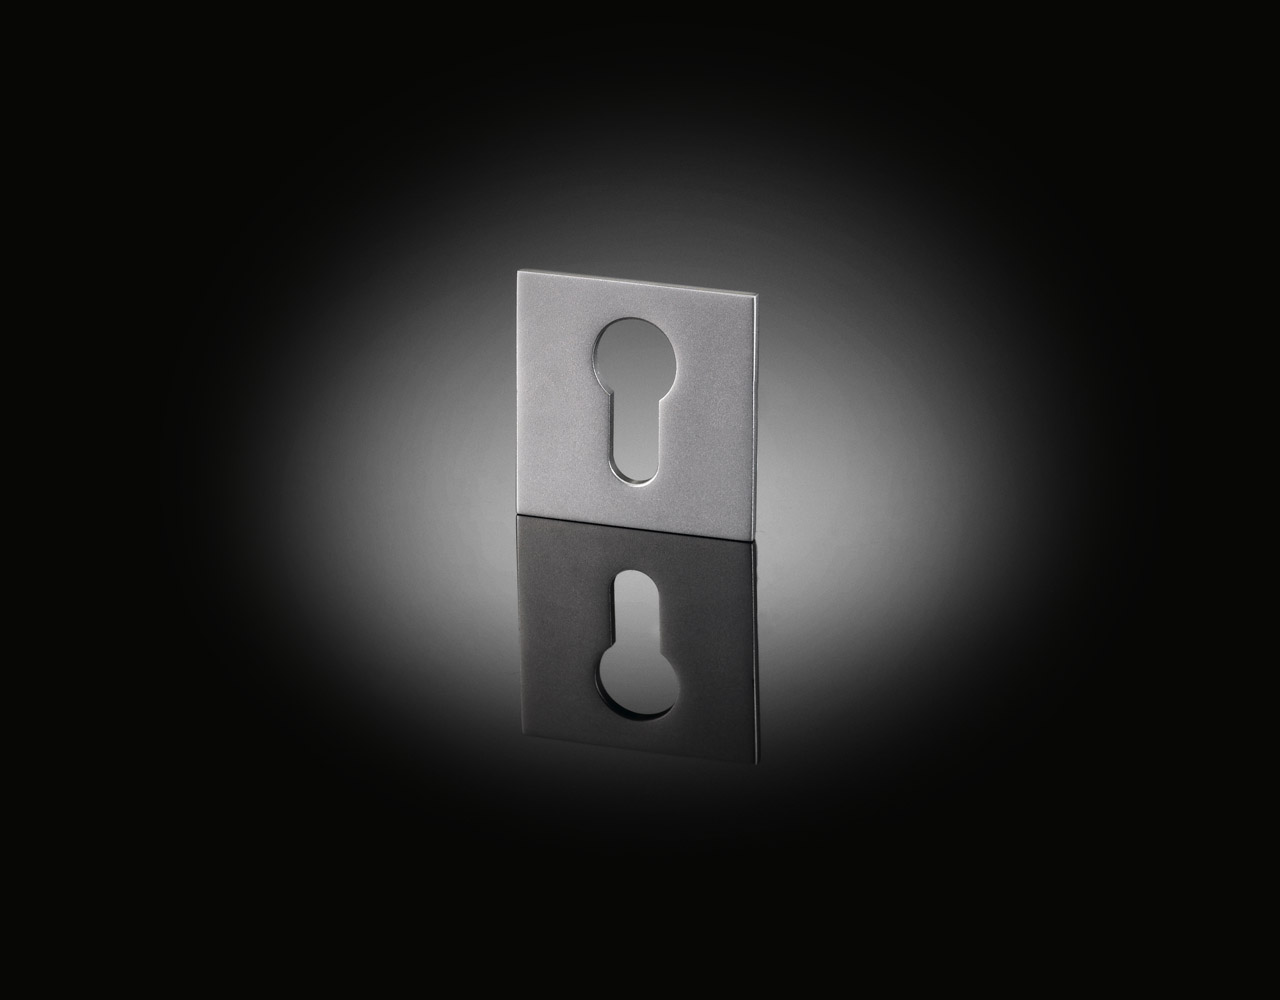 IRE01 bespoke square escutcheon designed by Ian Ritchie from izé